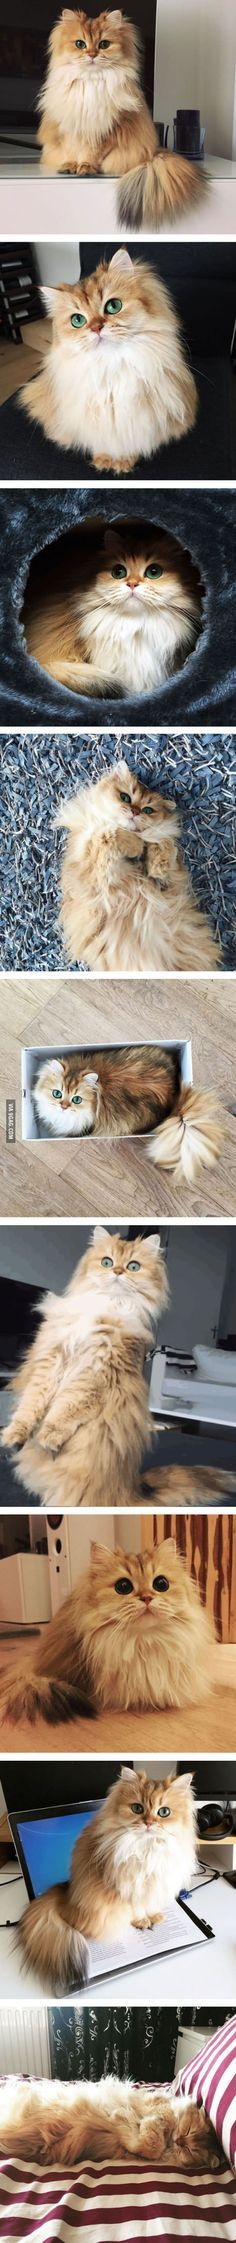 This Is Smoothie, The World's Most Photogenic Cat <~~and better looking than I'll ever be